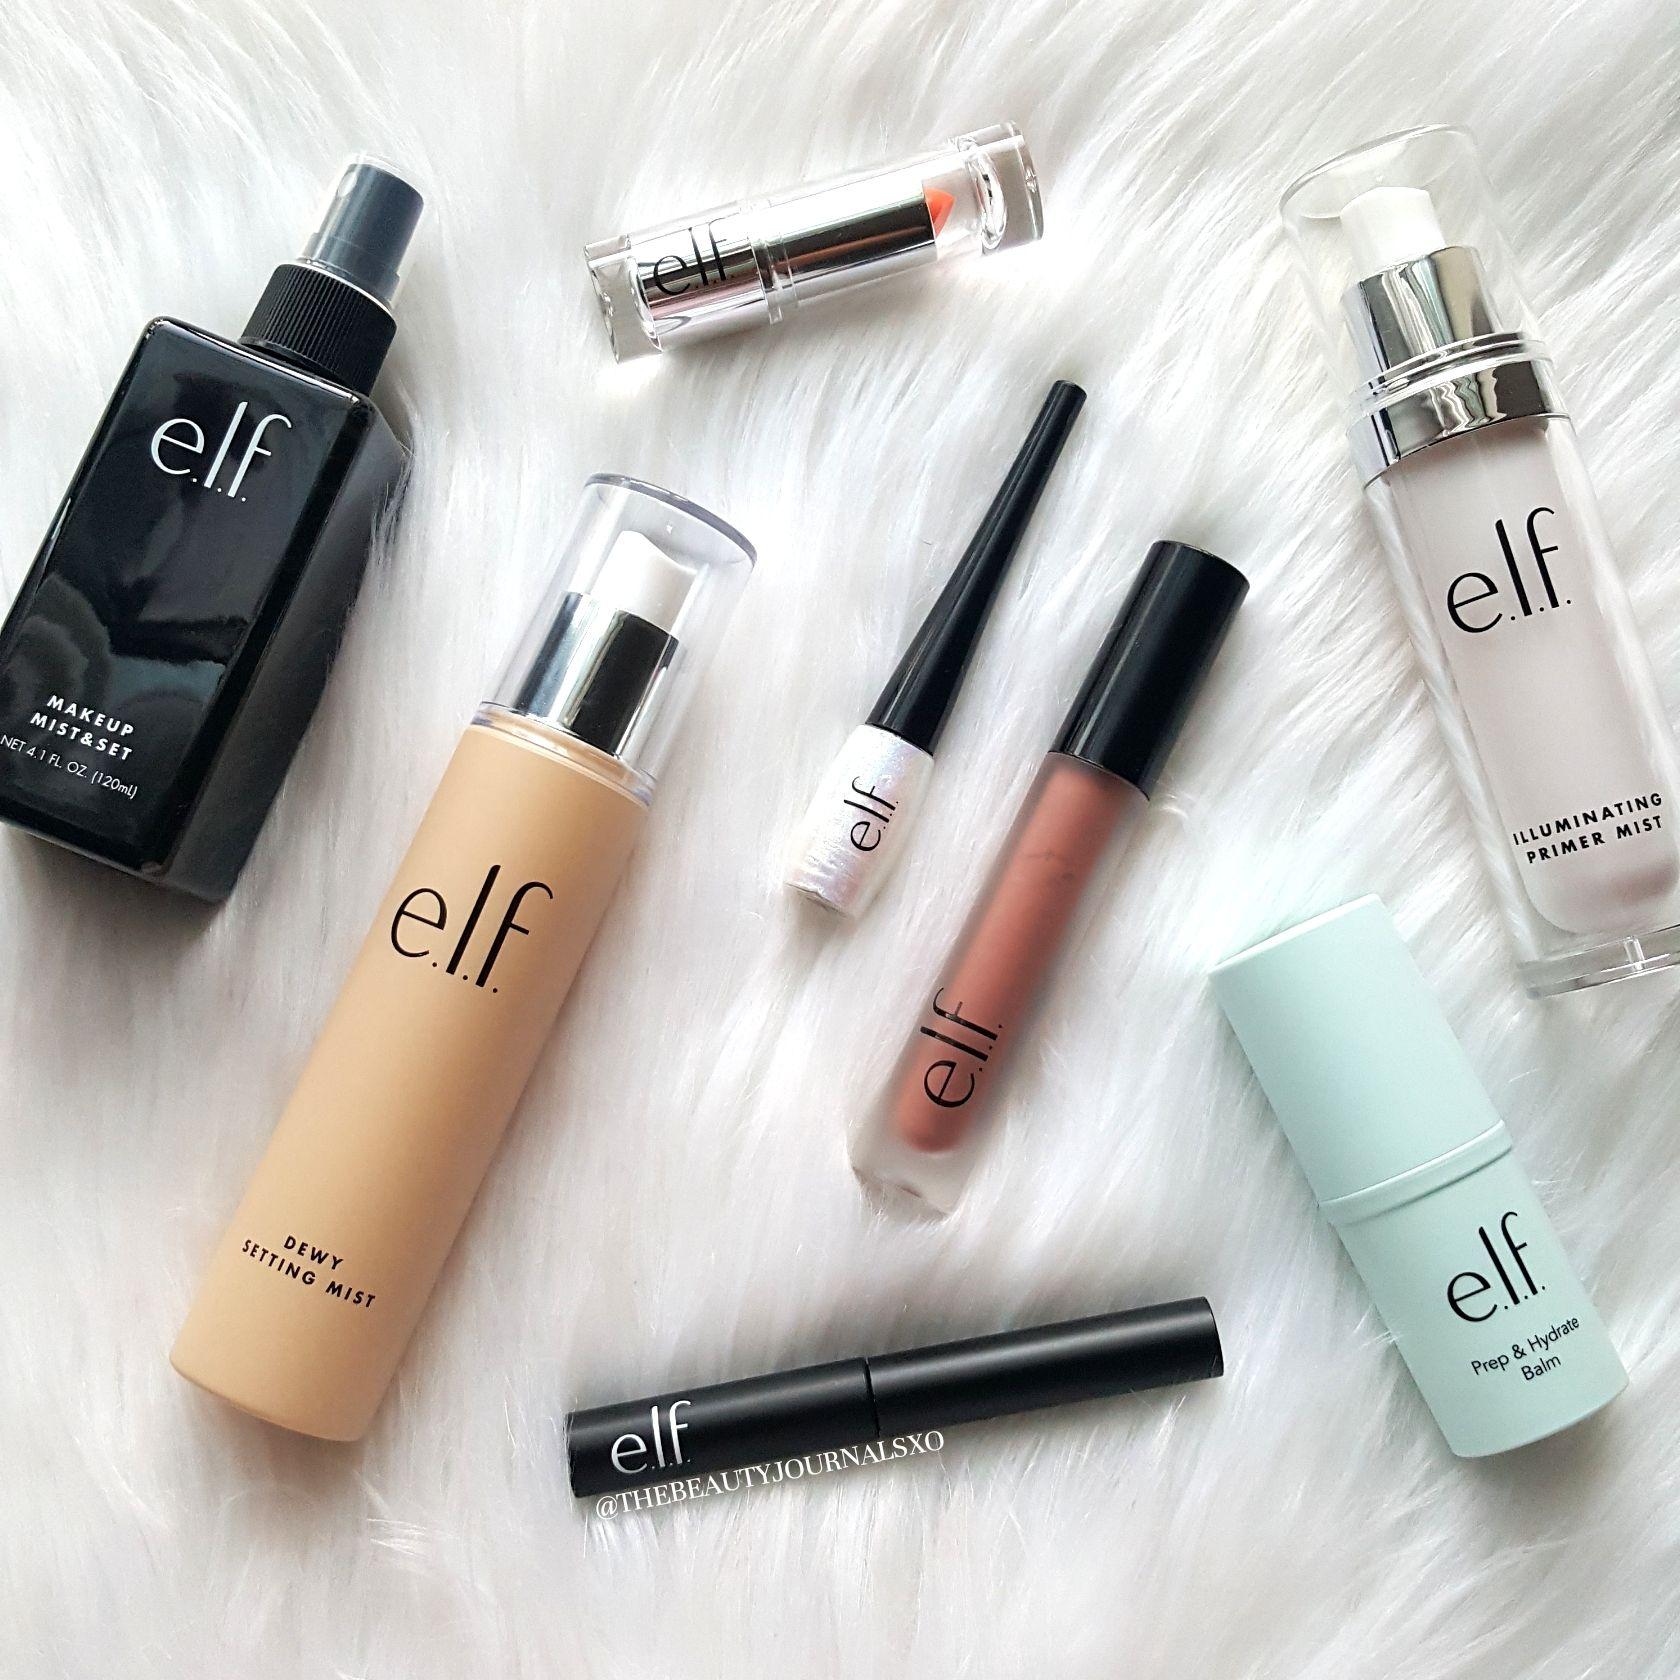 ELF Makeup Haul and Reviews The Beauty Journals in 2020